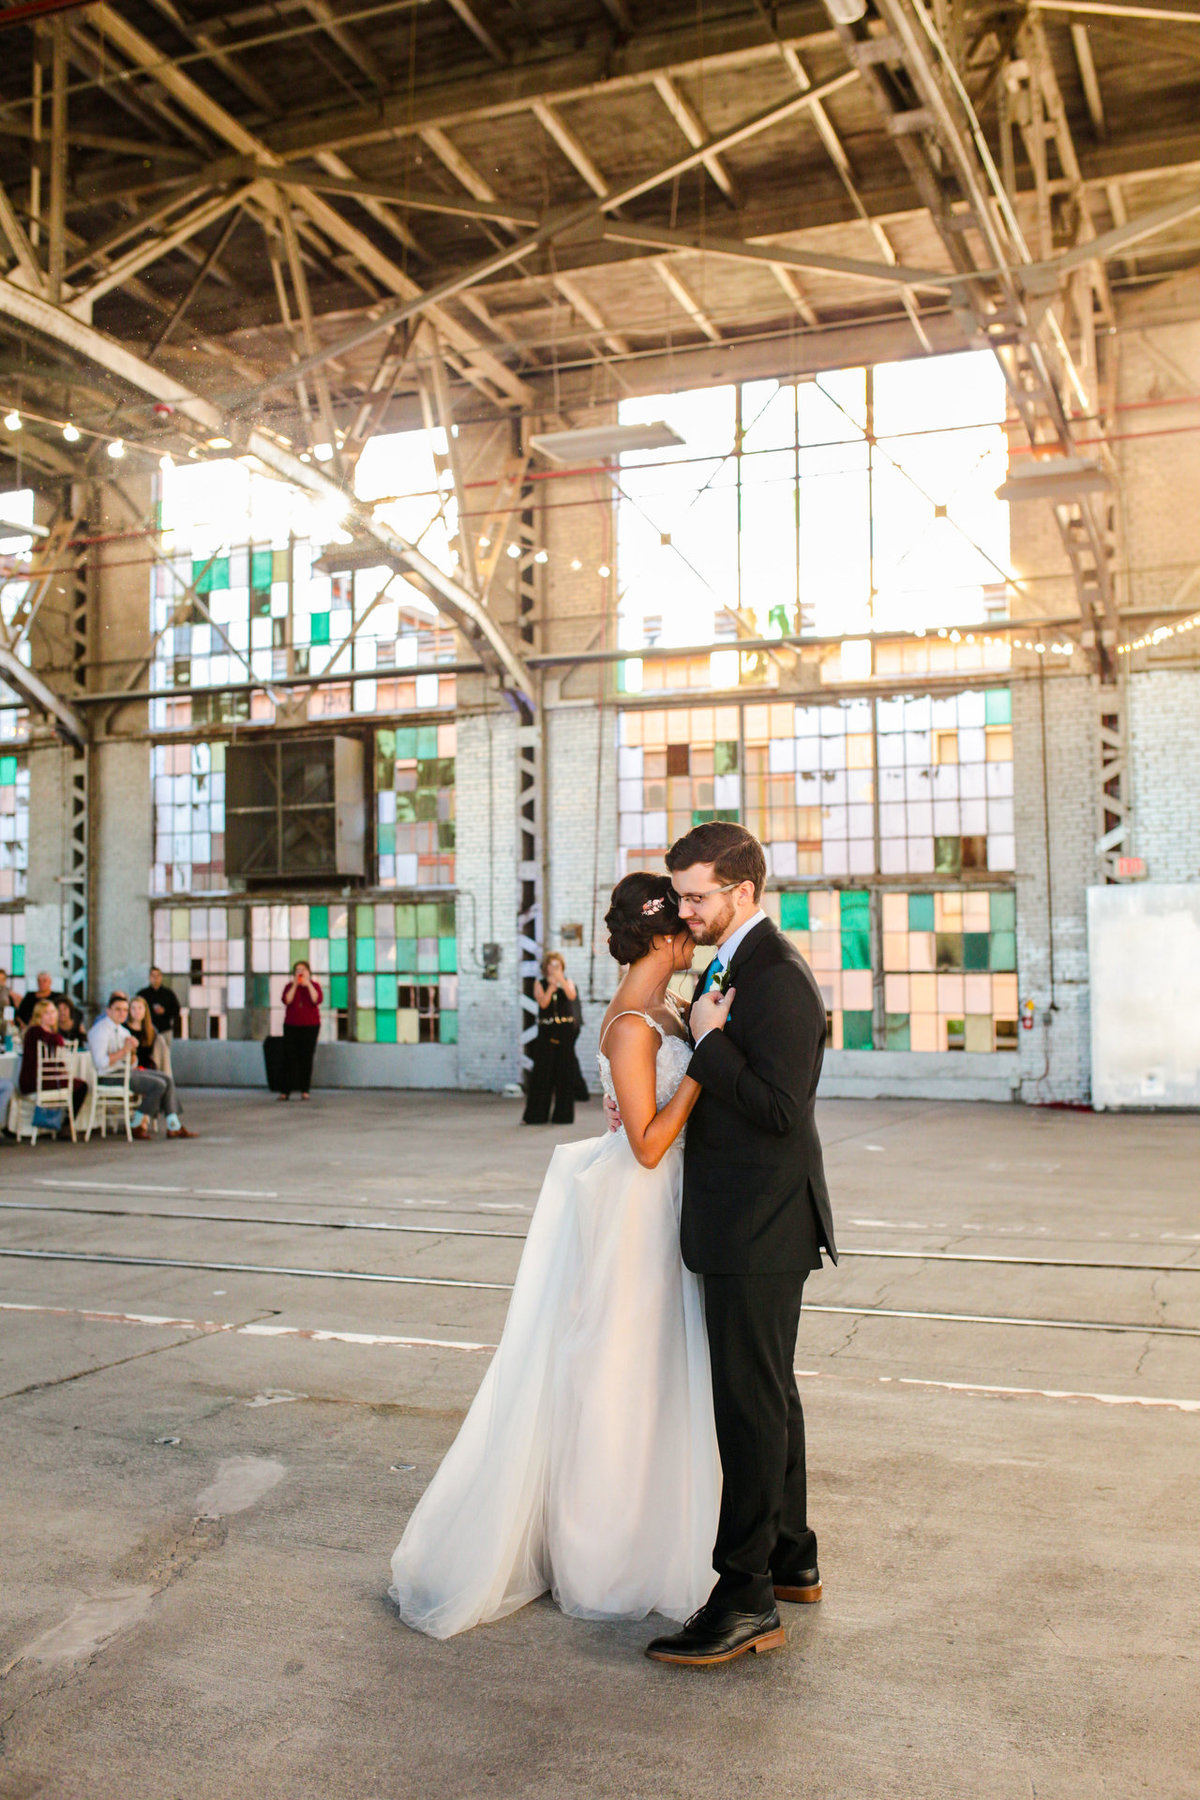 Albuquerque Wedding Photographer_Abq Rail Yards Reception_www.tylerbrooke.com_043